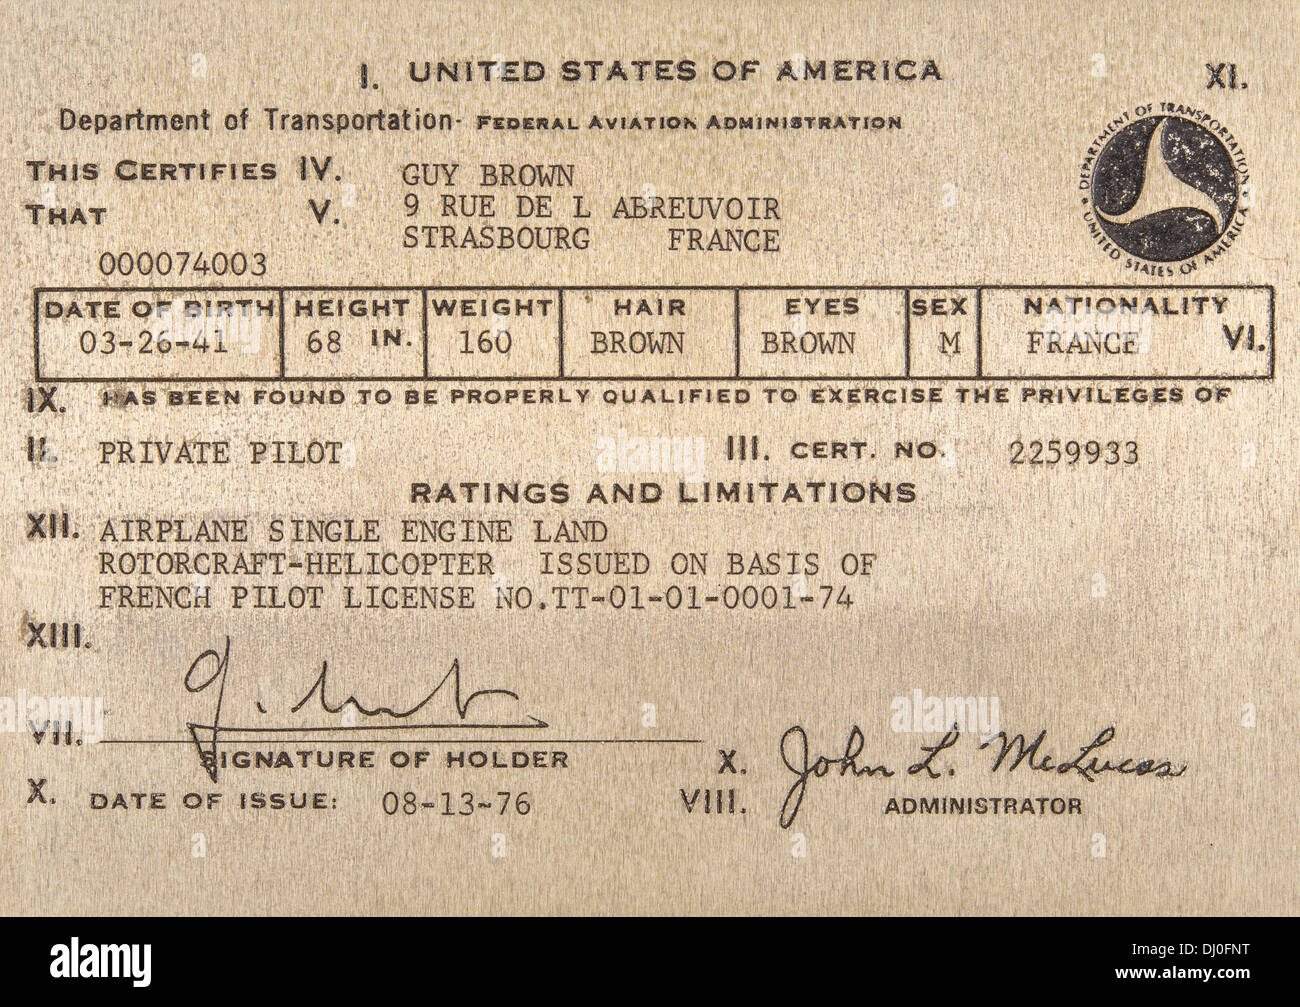 US Private Airplane And Rotorcraft Helicopter Pilot License Stock Photo Roya